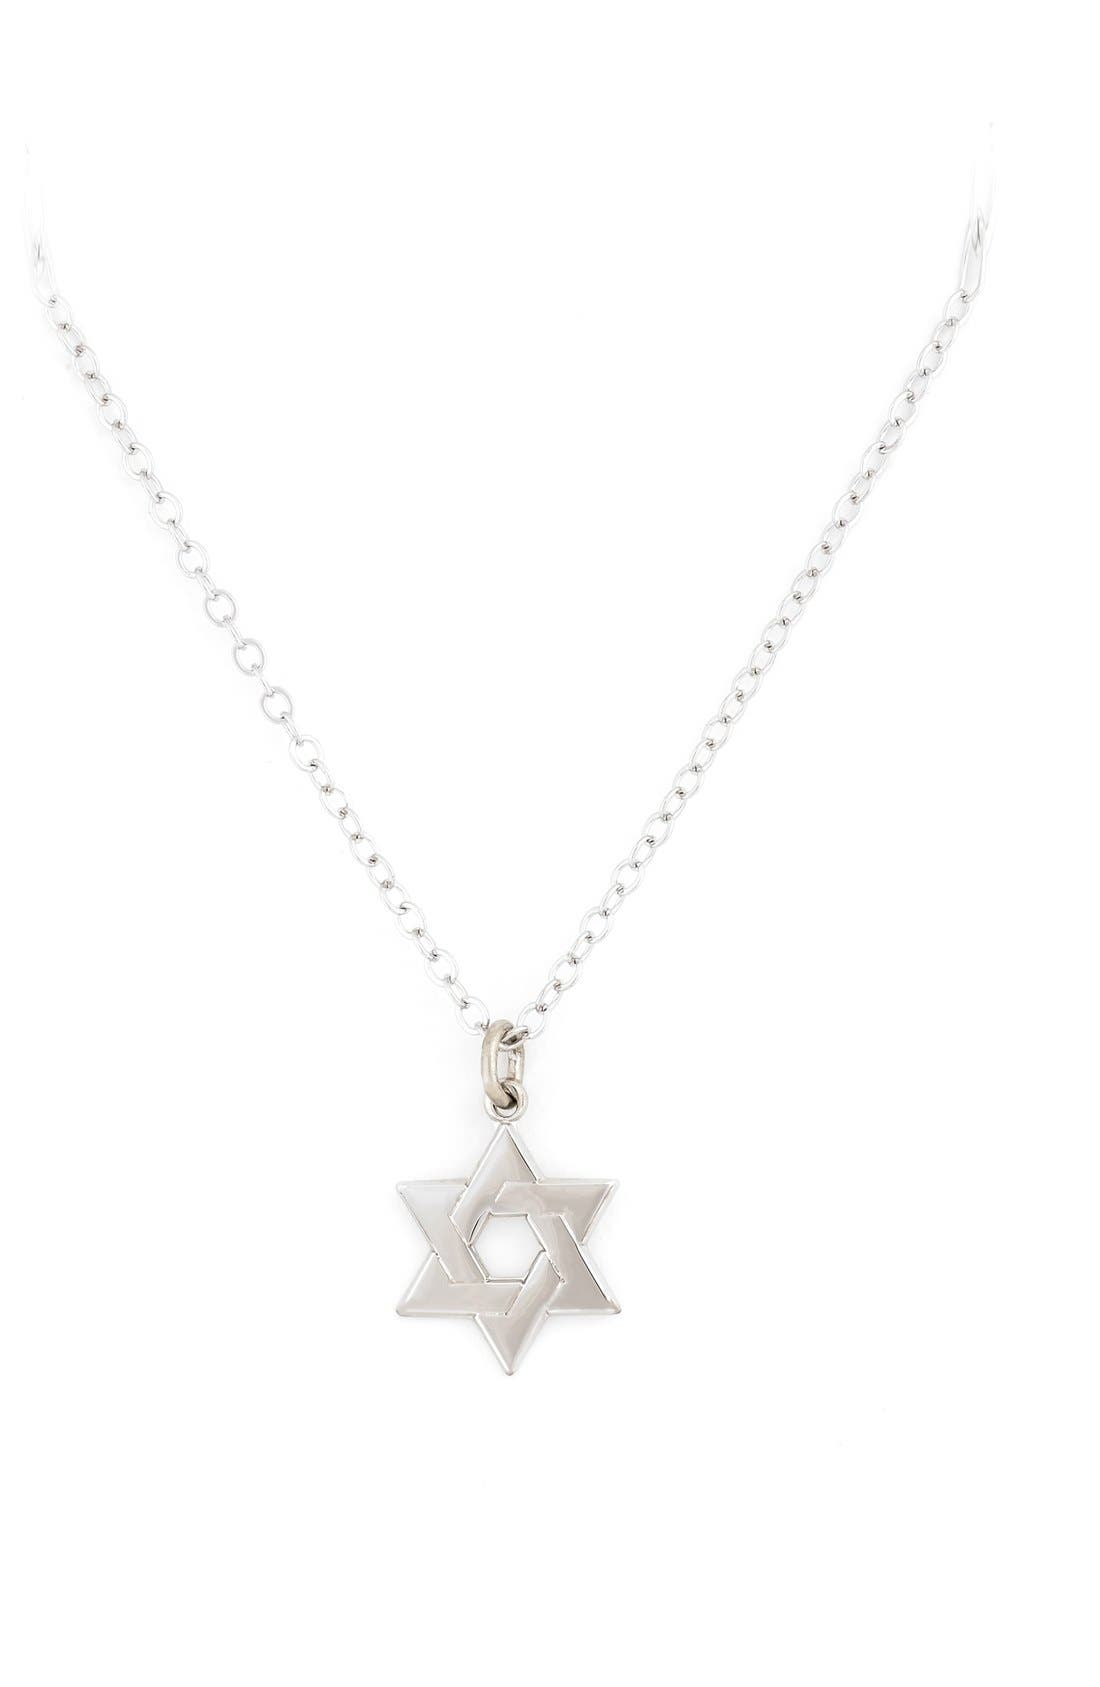 Star of David Sterling Silver Pendant Necklace,                         Main,                         color, 000